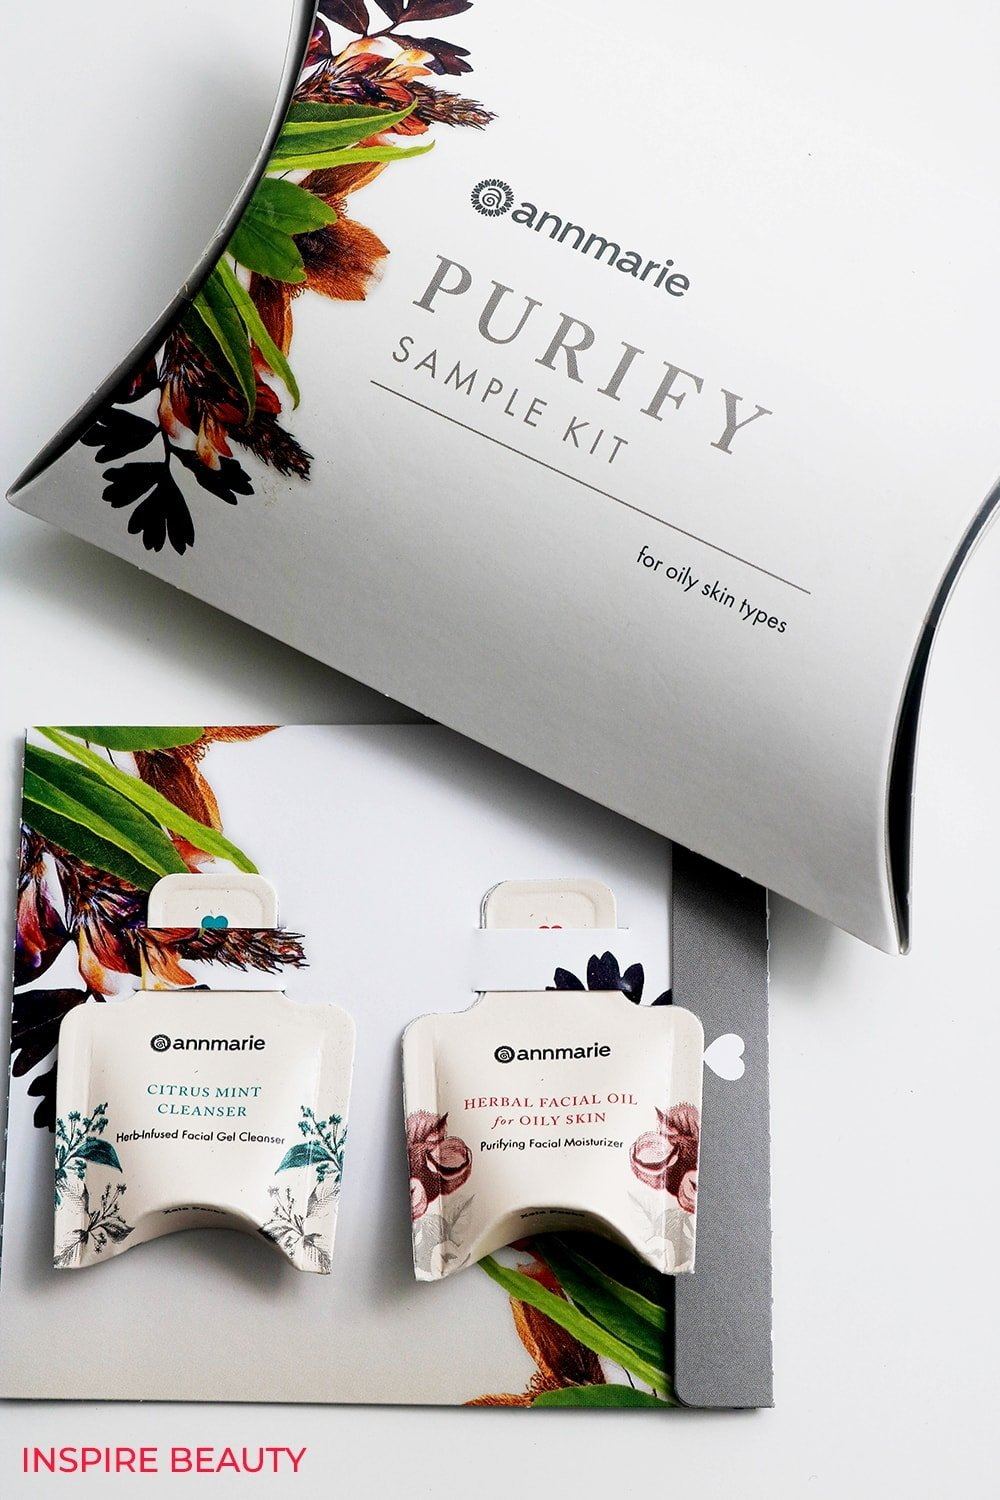 Annmarie Skin Care Purify Sample Kit review of Citrus Mint Cleanser and Herbal Facial Oil for Oily Skin that balance, clarify and help keep skin clear.